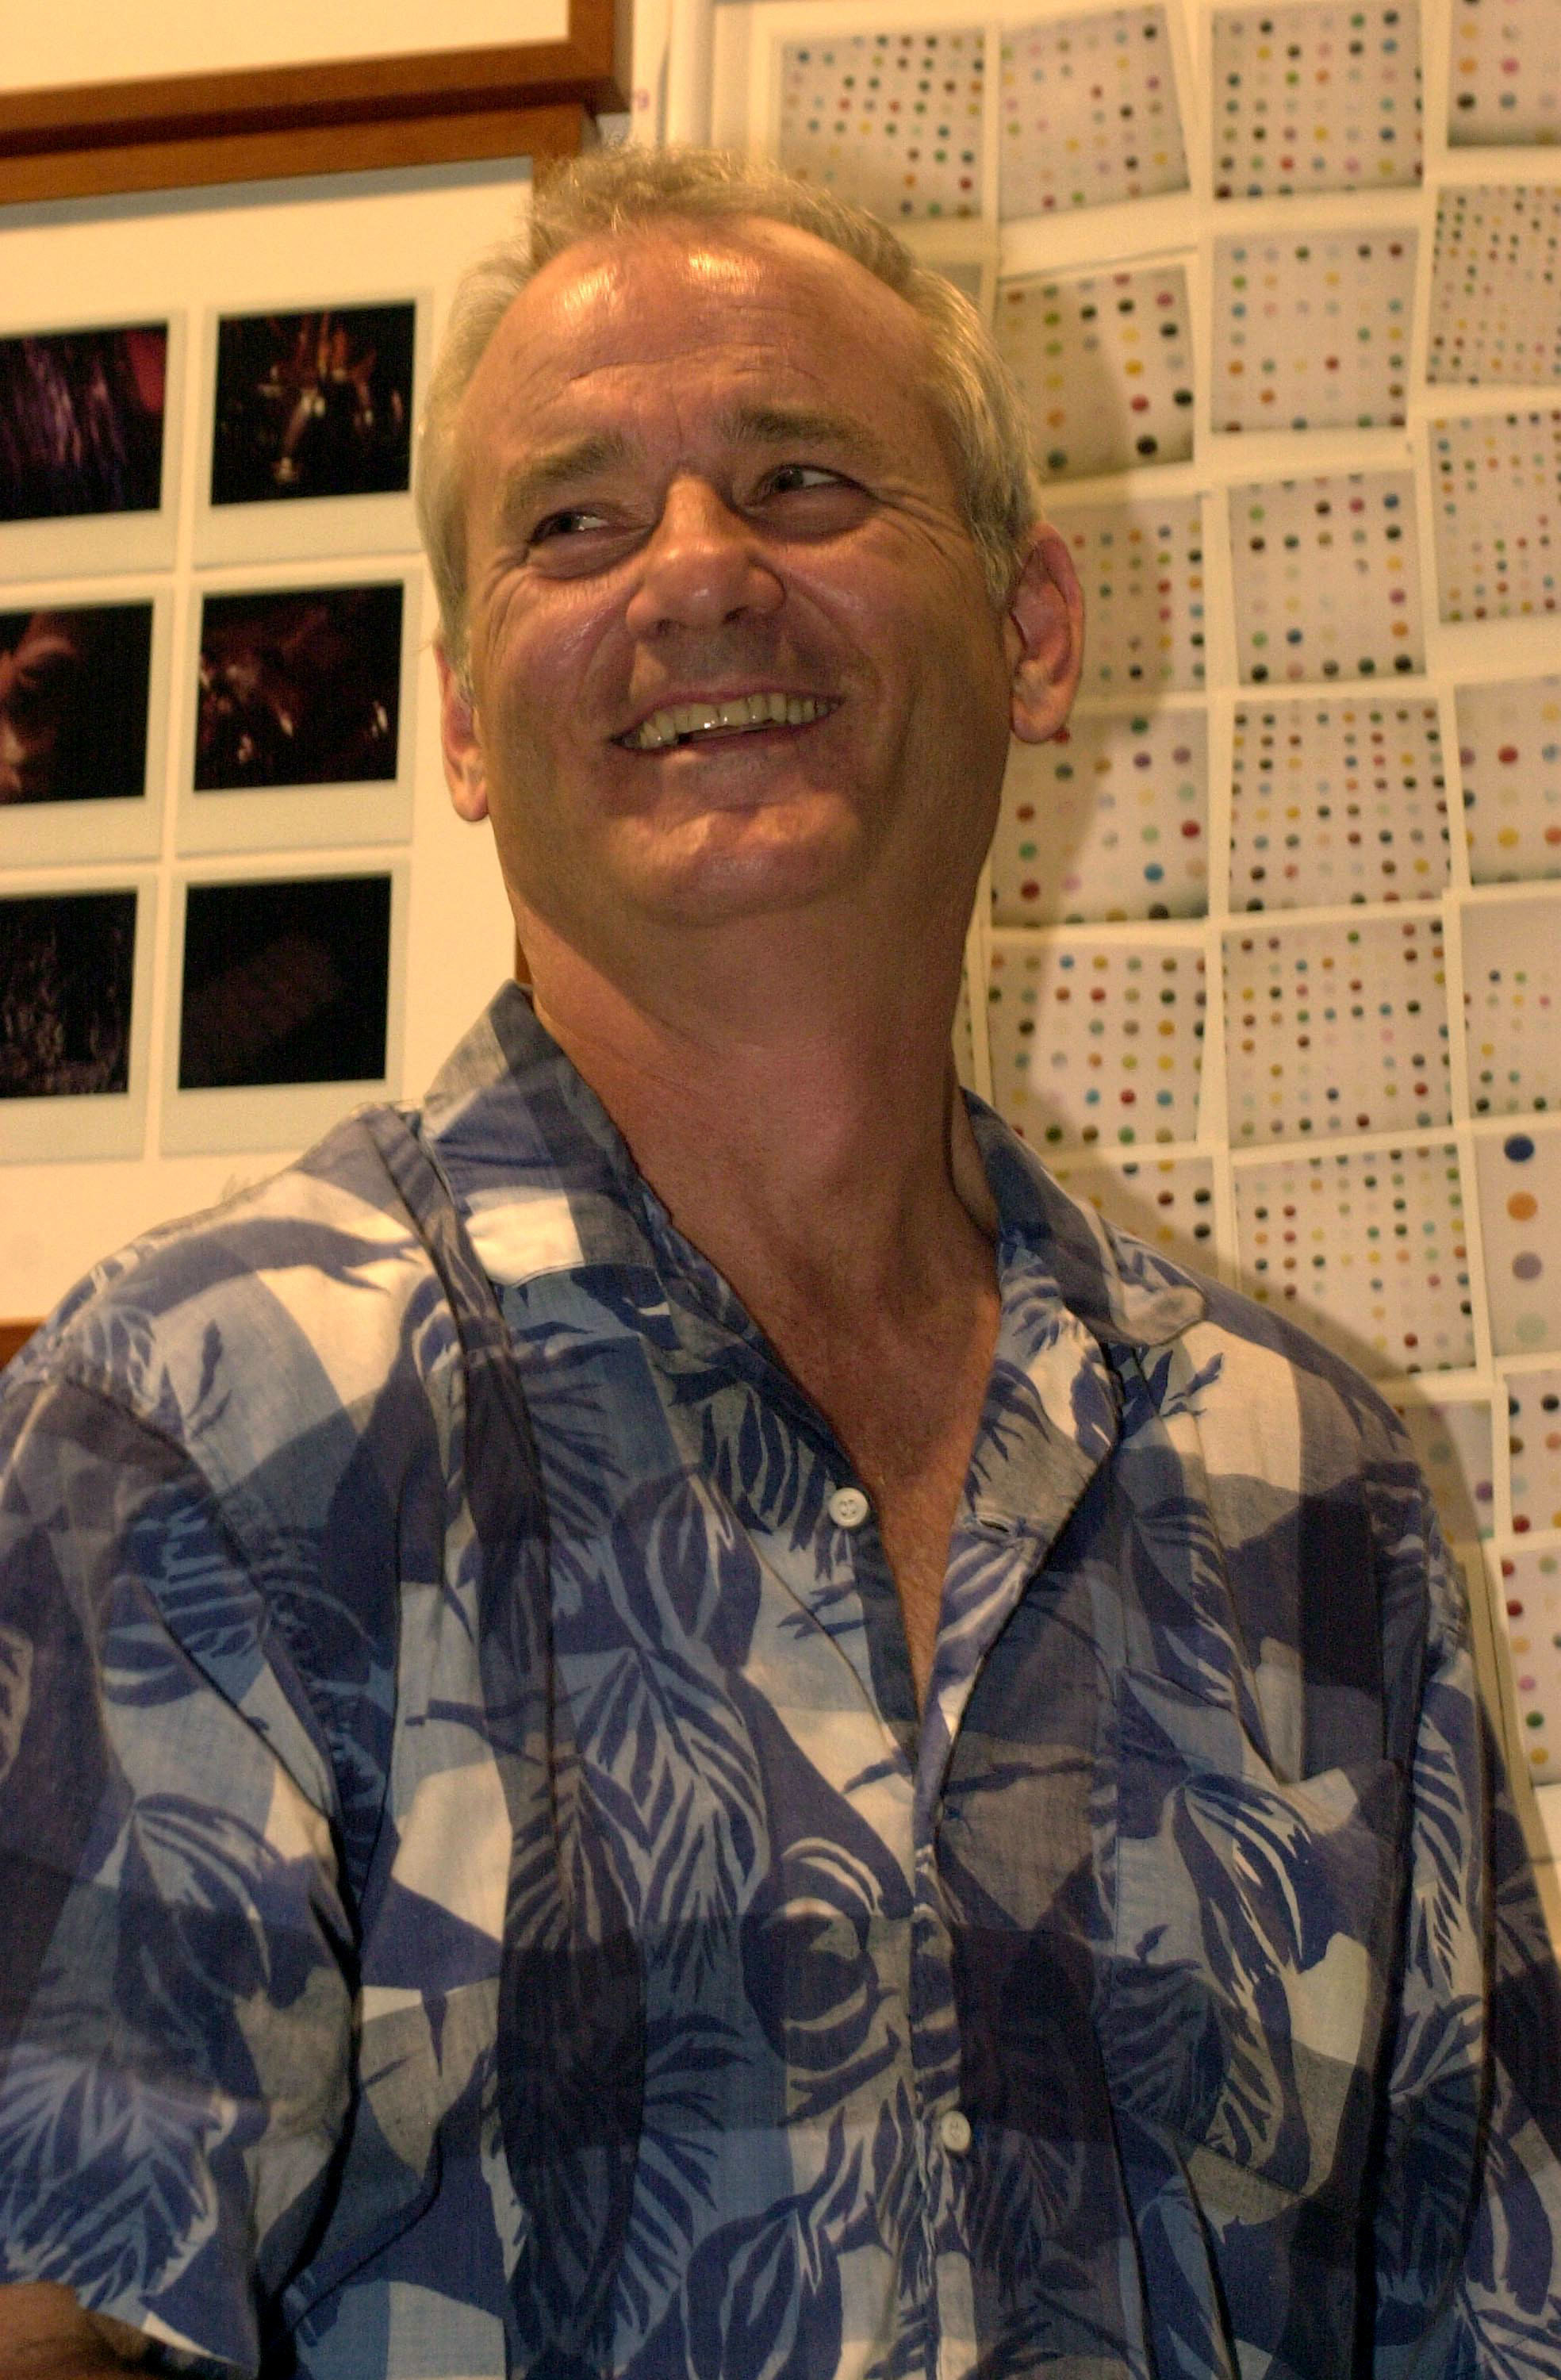 Bill Murray wearing a loose shirt and smiling